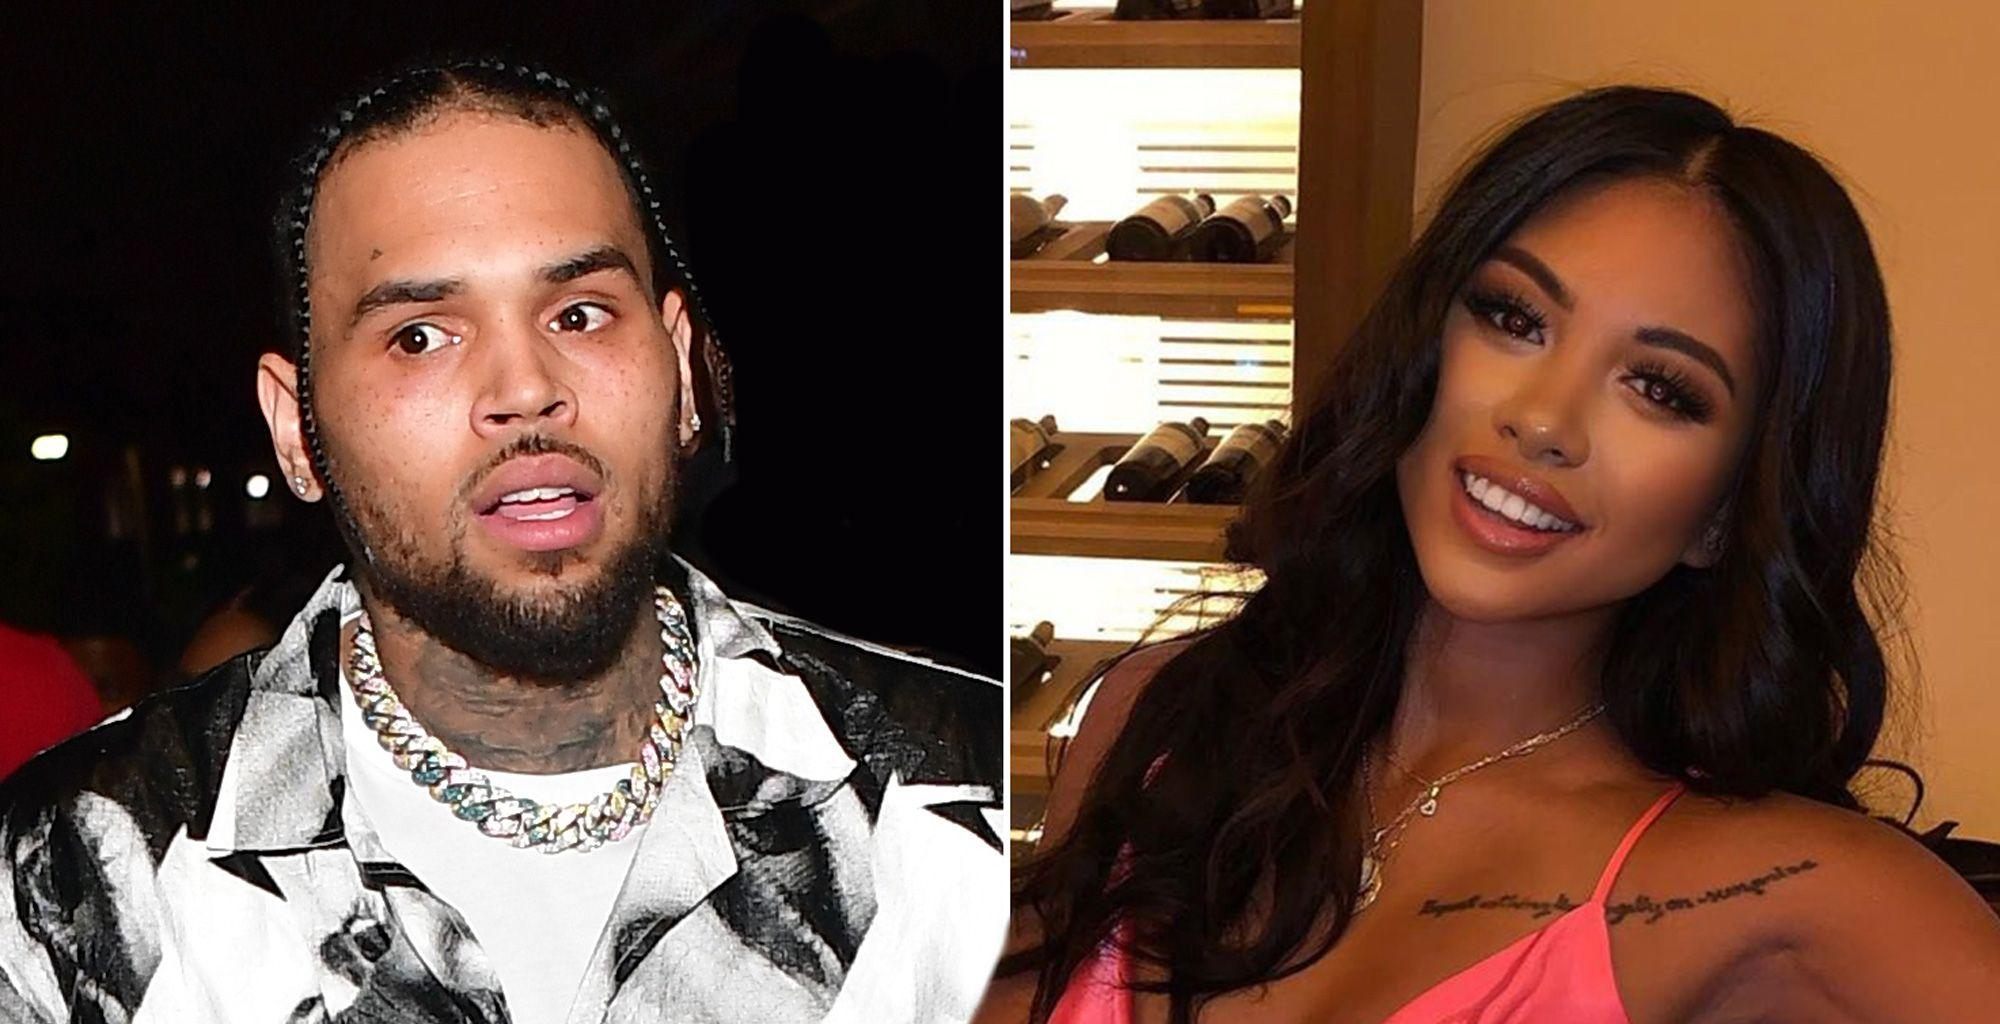 Chris Brown And Ammika Harris No Longer Follow Each Other On Social Media - Here's Why!